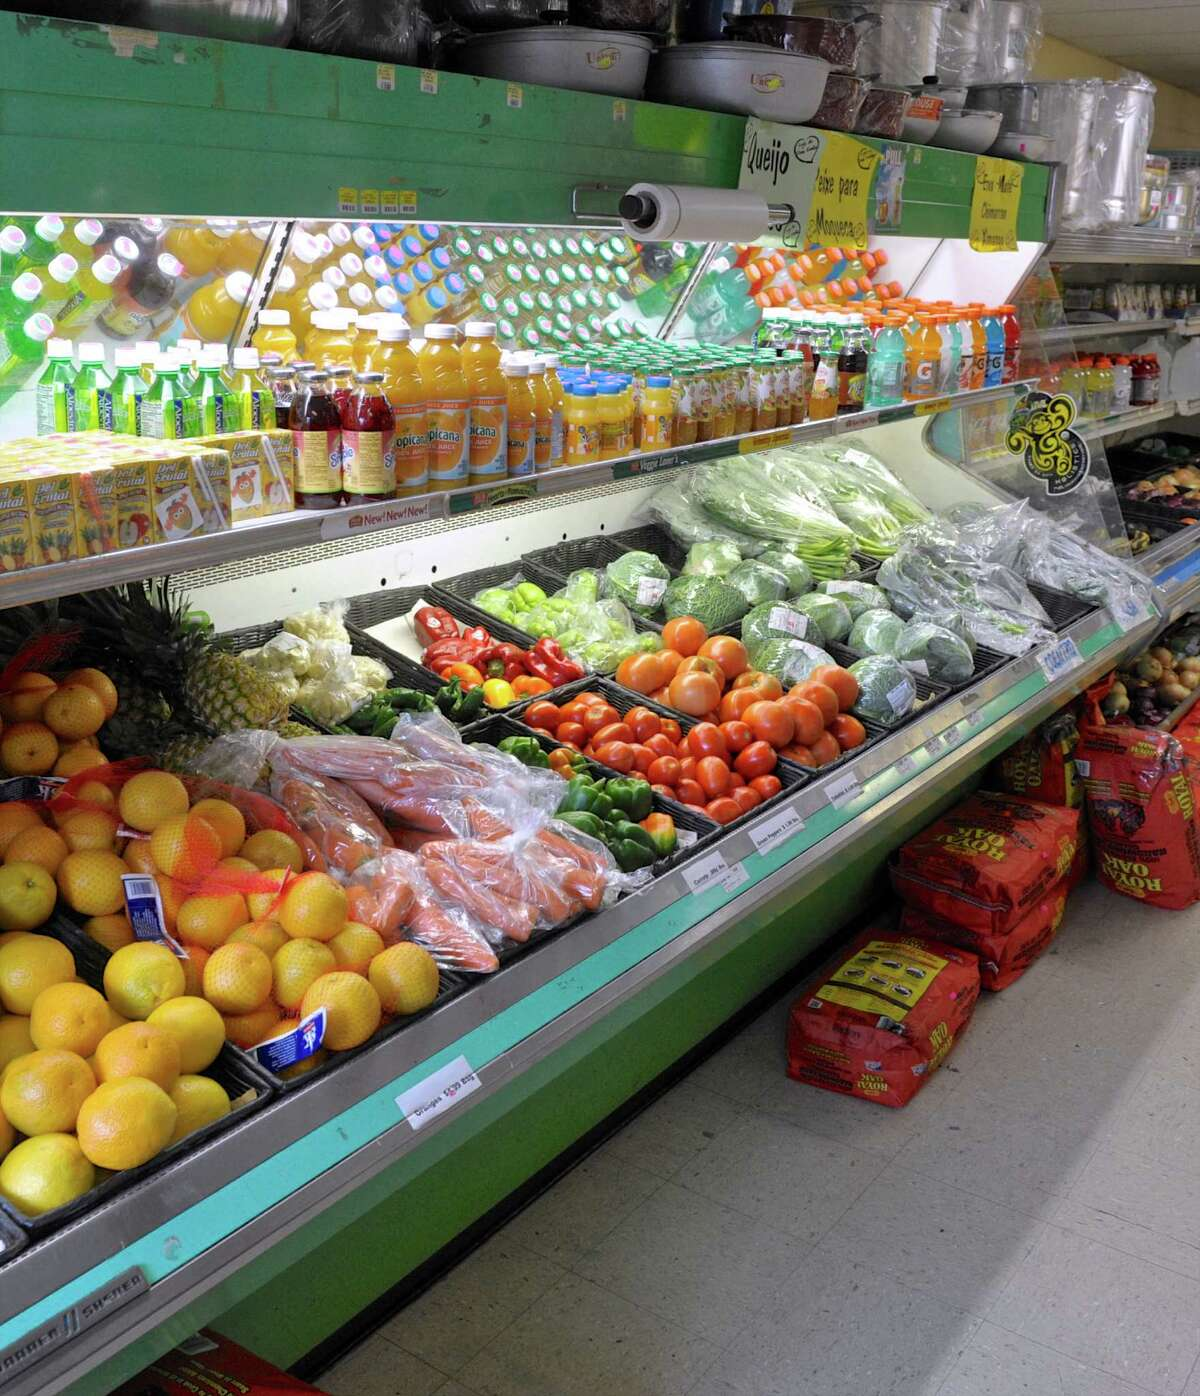 Stores like the Fernandes Food Store, which carry a variety of fresh produce and meat, will not be affected by the new USDA regulation that would require stores that except food stamps to stock fruits and vegetables. Wednesday, August 31, 2016, in Danbury, Conn.